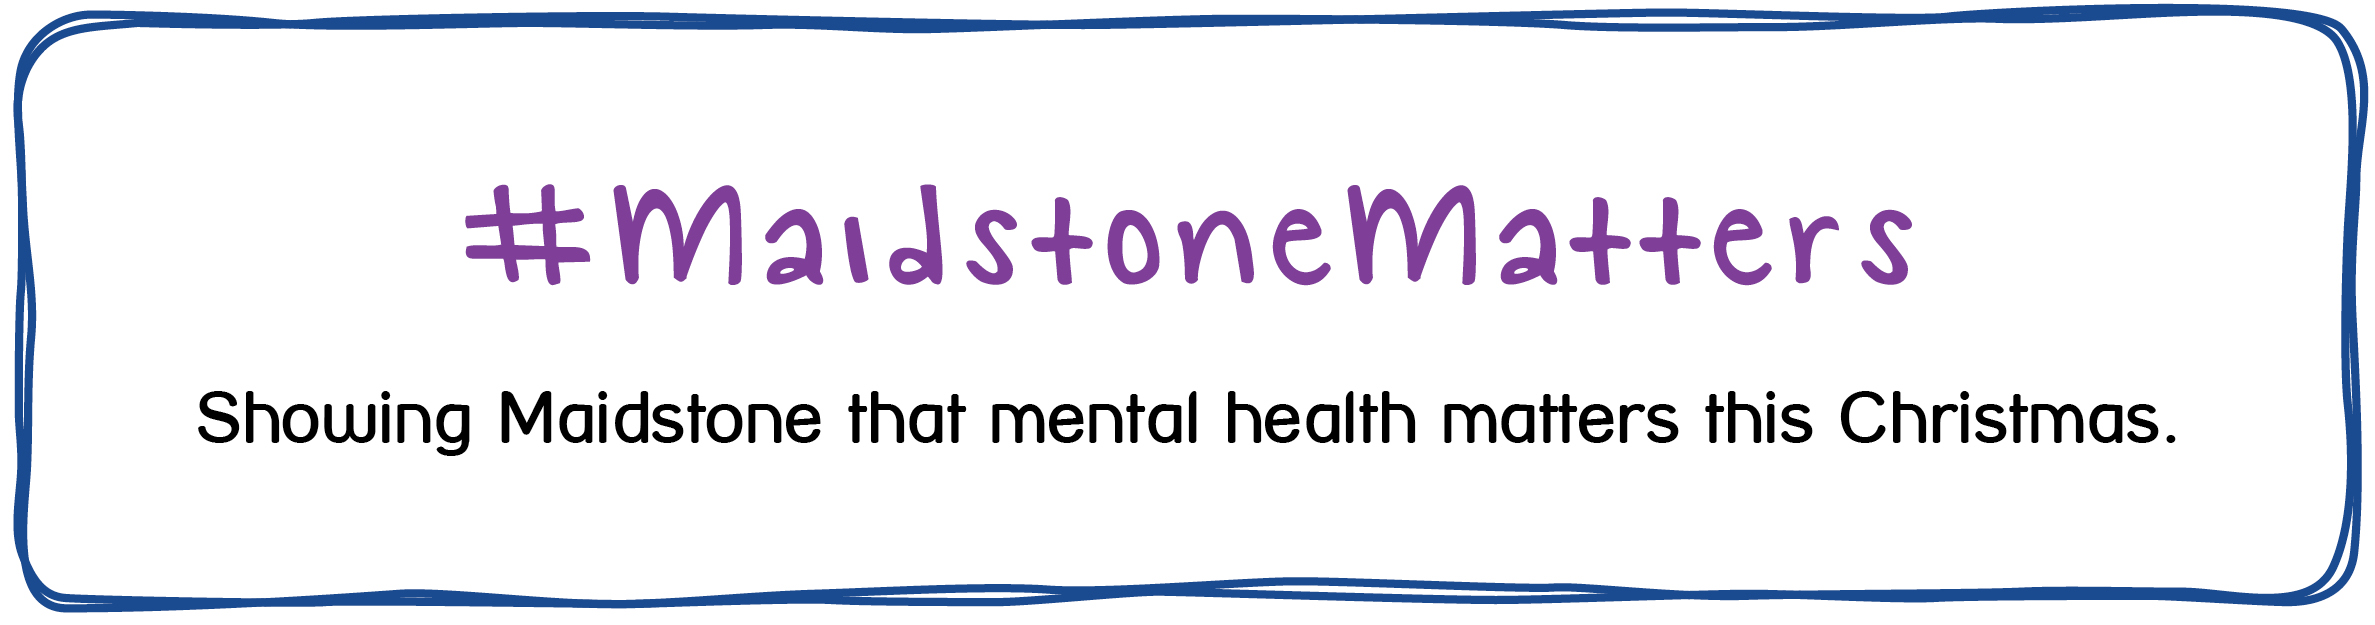 Maidstone Matters - Showing Maidstone that mental health matters this Christmas.